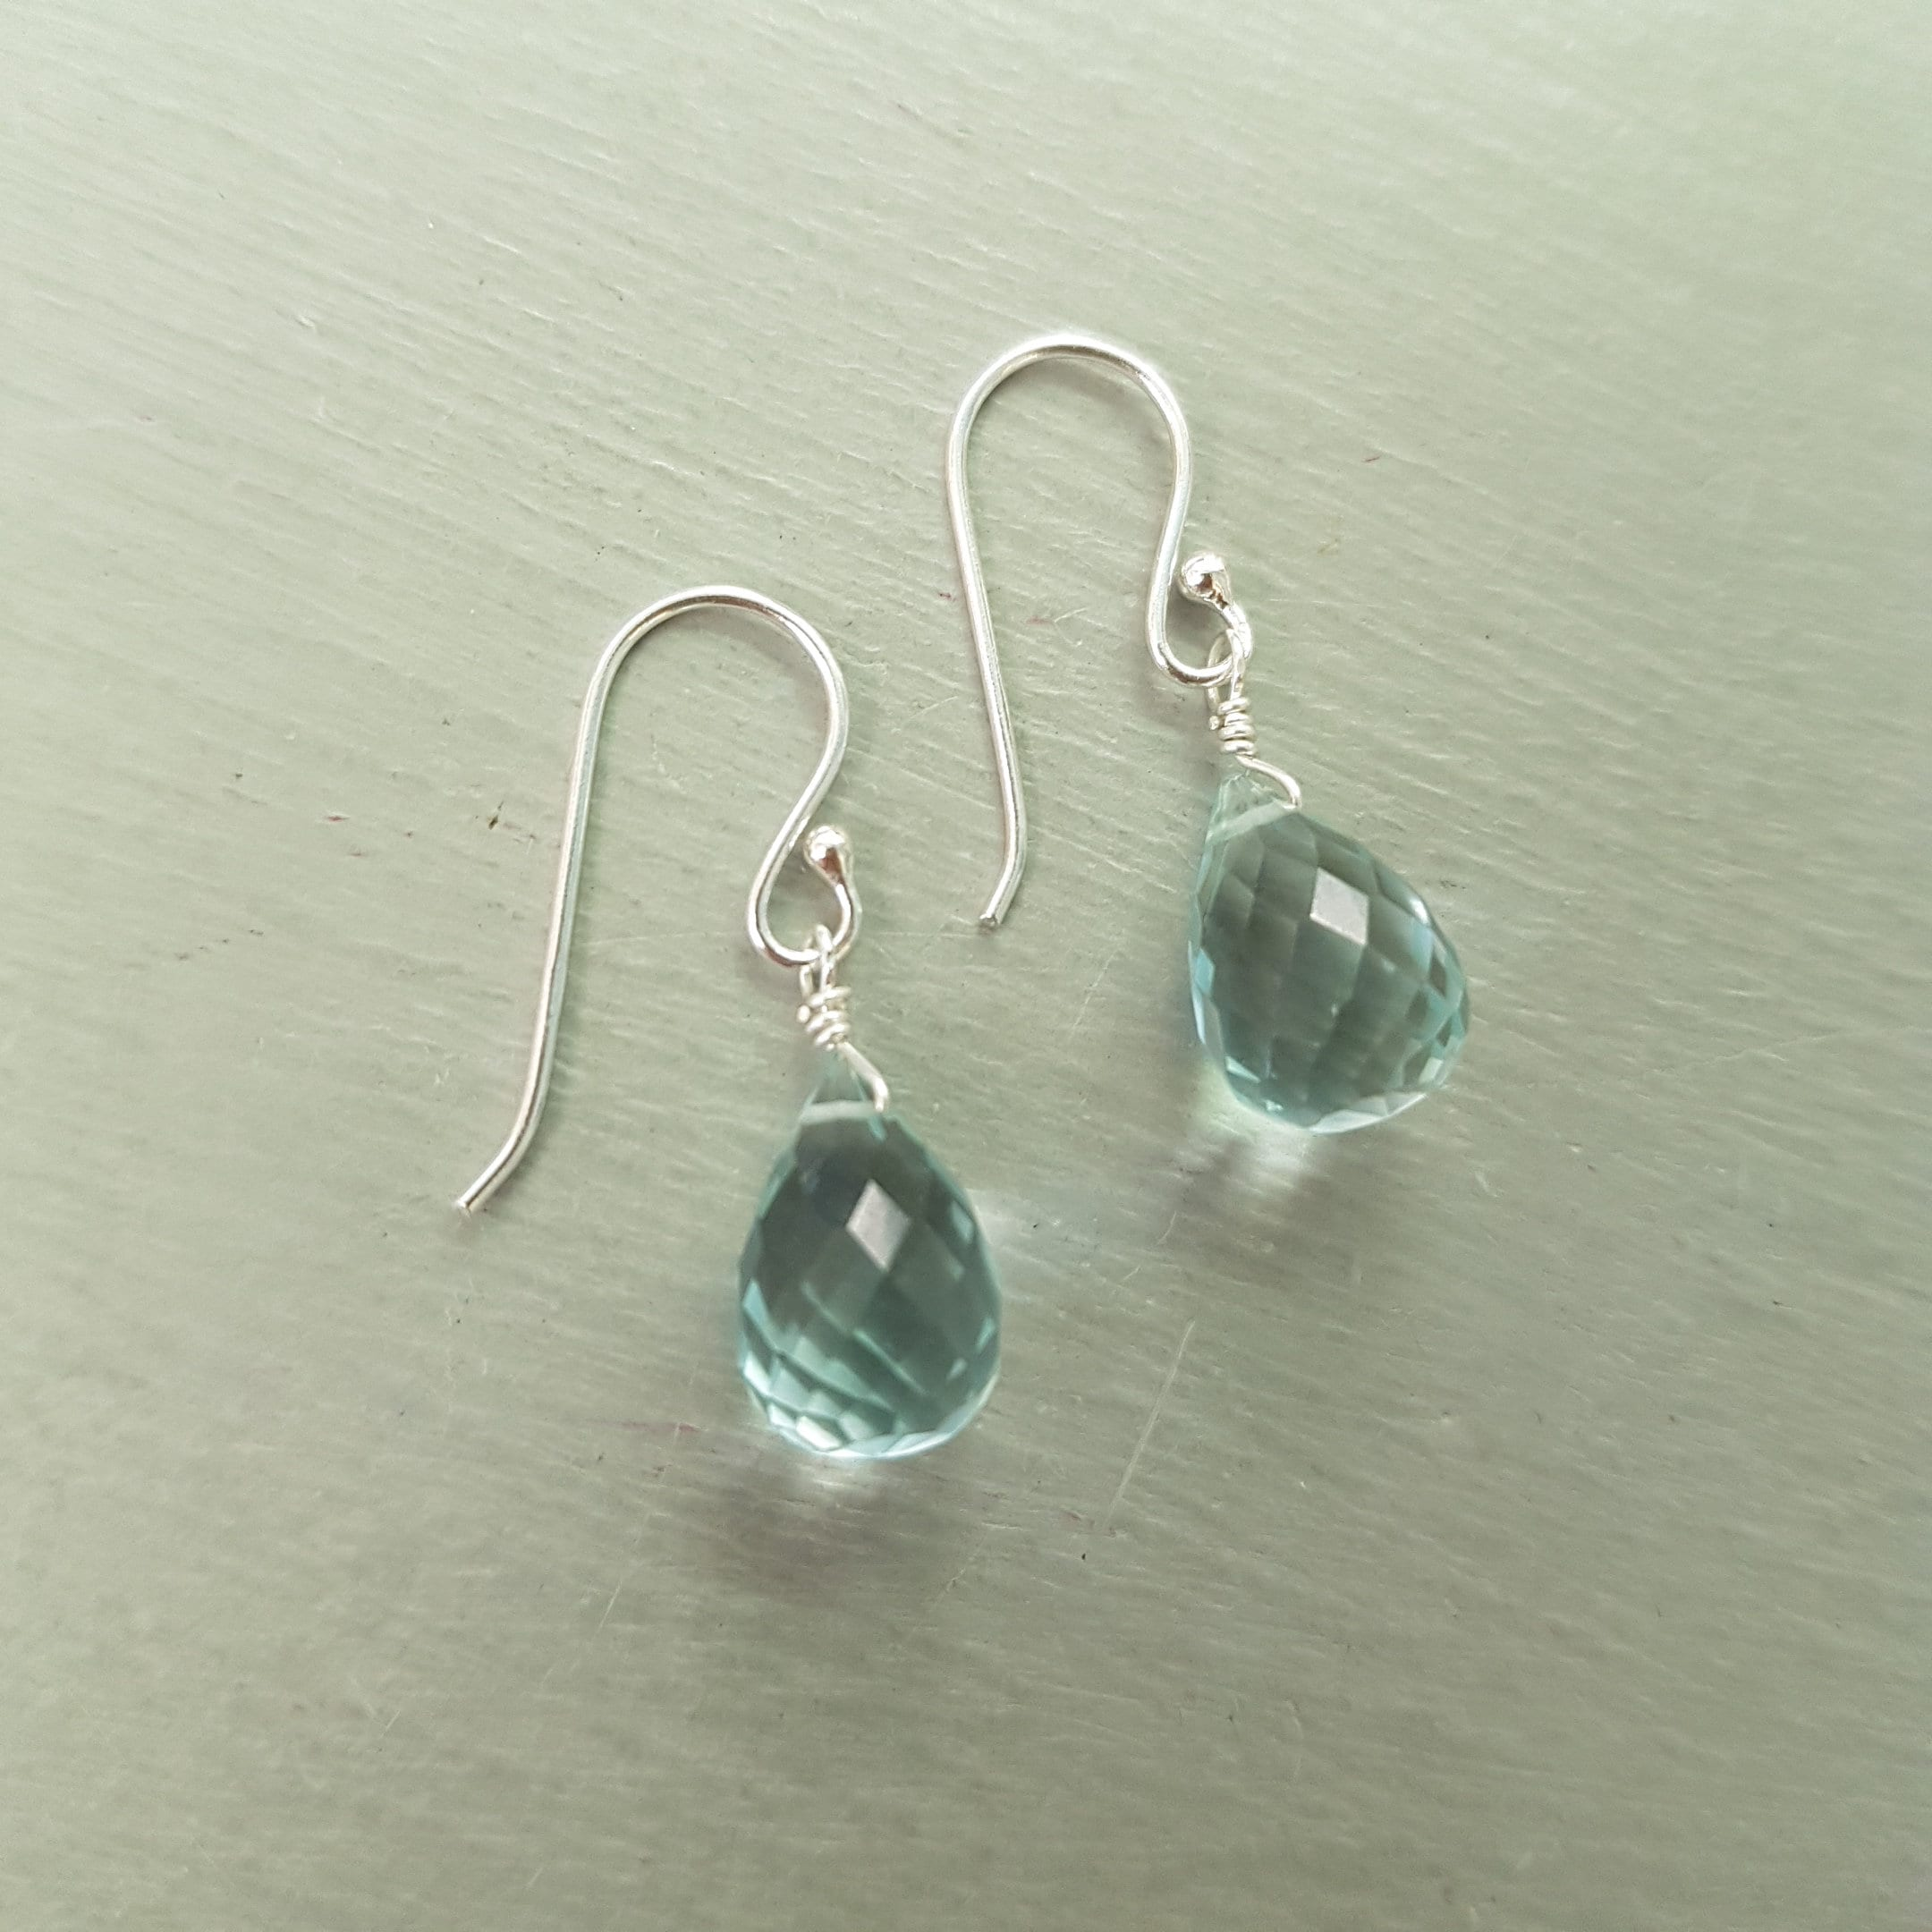 ff4c8f37d Aquamarine earrings Sterling Silver hooks wire wrapped small teardrop  gemstone earrings blue earrings March Birthstone jewelry gift